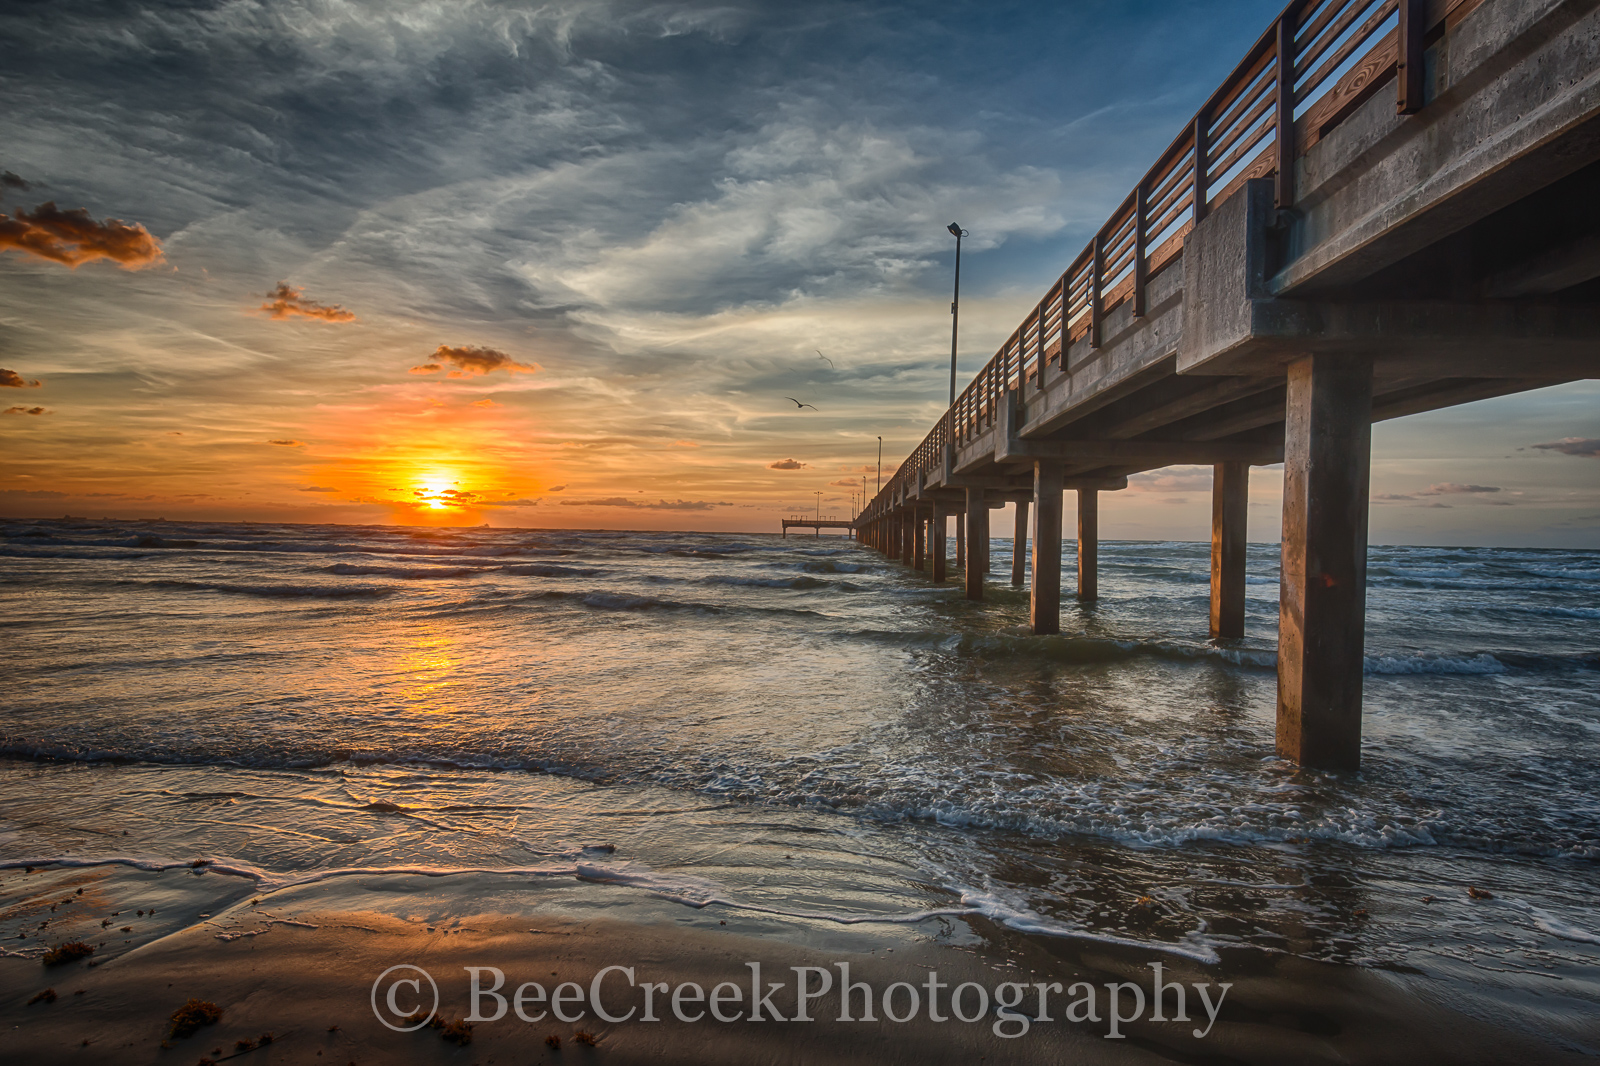 Sunrise at Texas gulf Coast -   This was another photo we capture of the spectacular sunrise at texas gulf coast next...